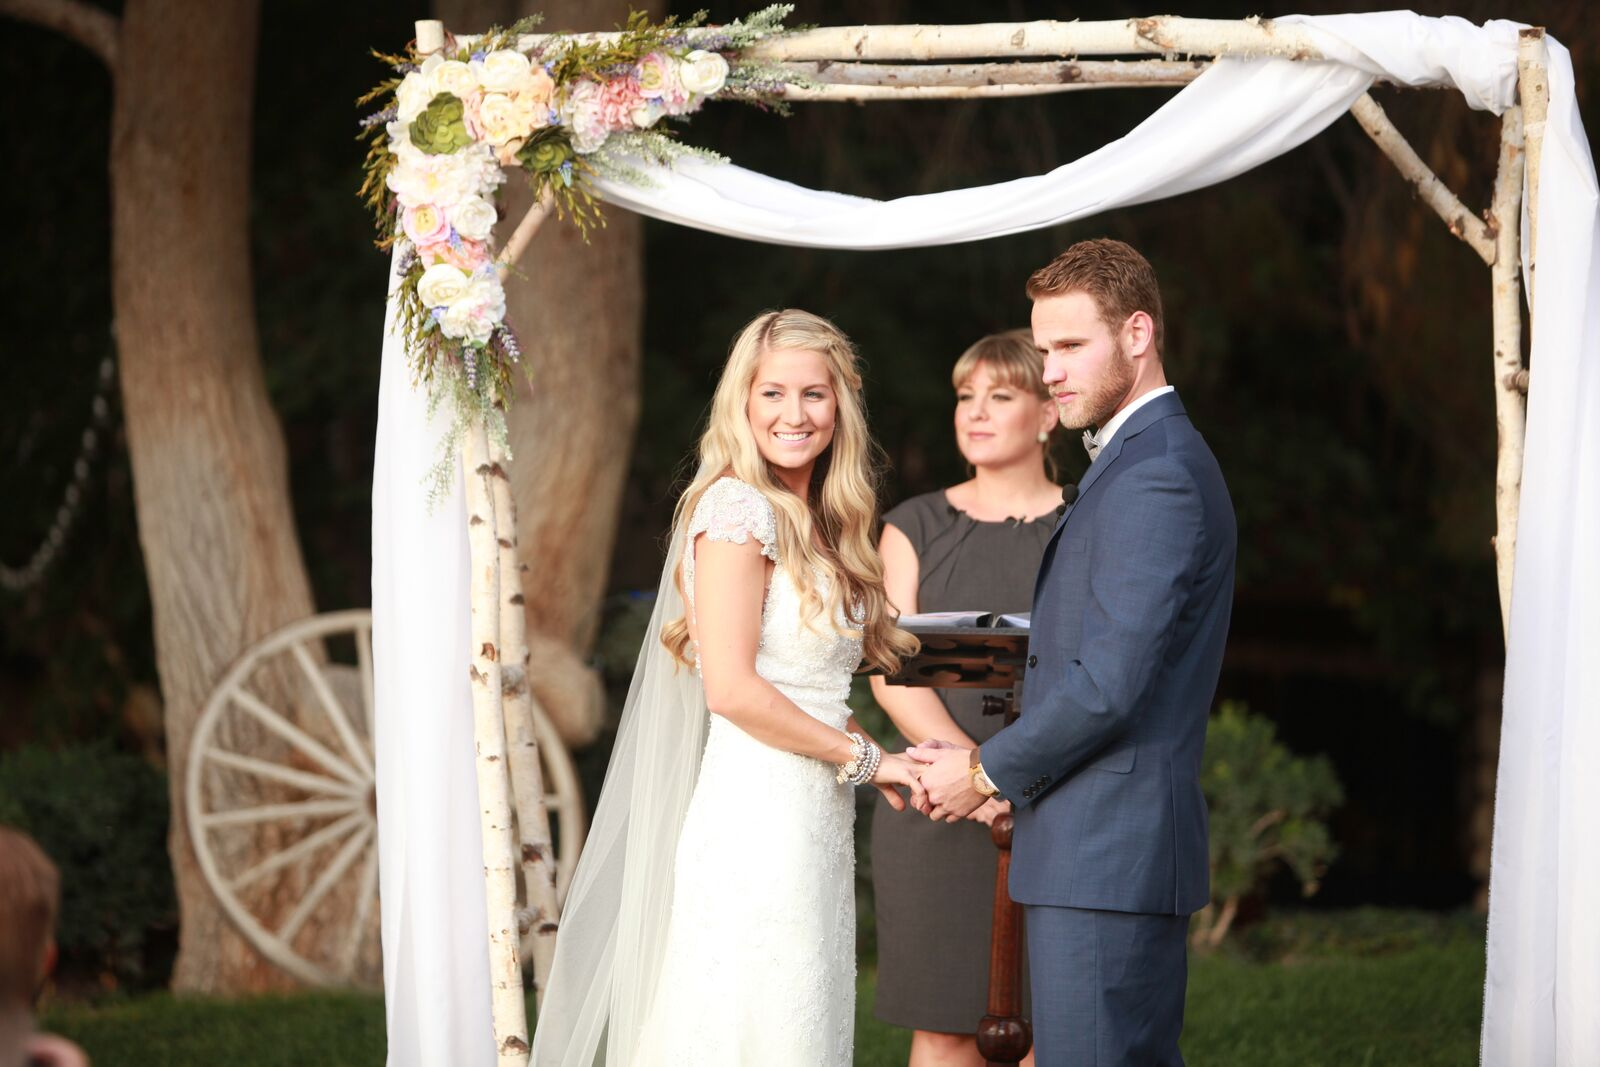 Wedding Ceremony at Legends Ranch. Bride and groom during romantic ceremony